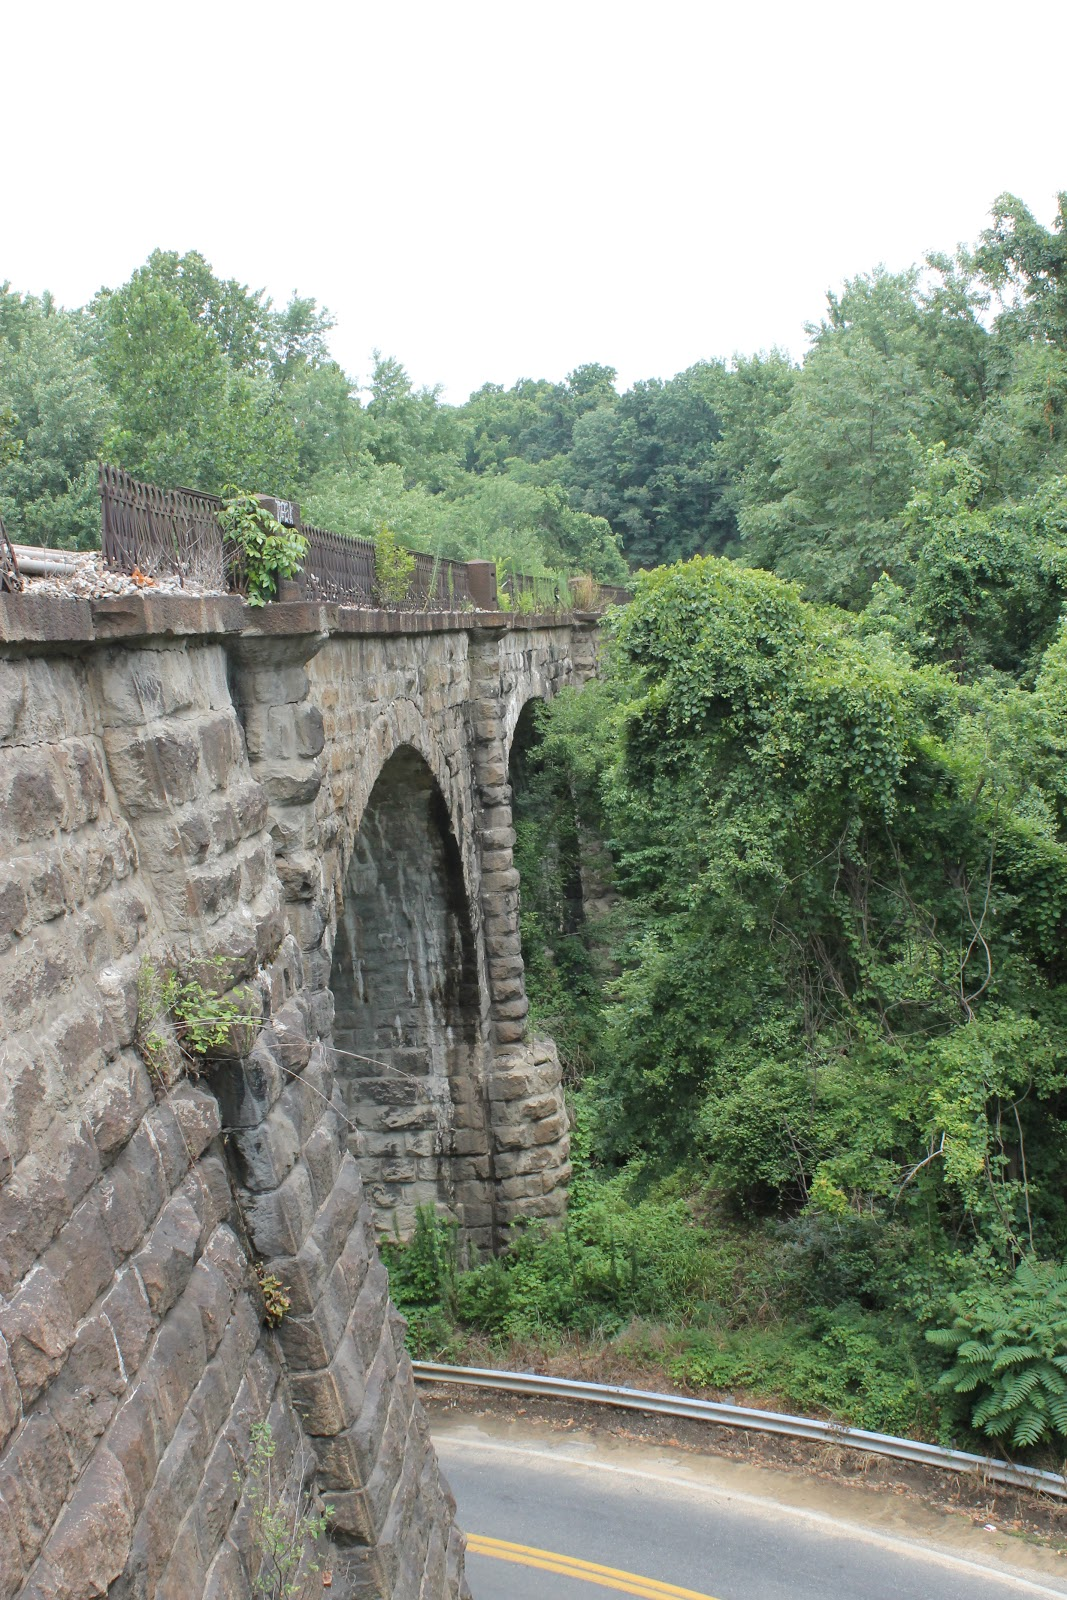 This photo shows how the viaduct has deteriorated over the years.